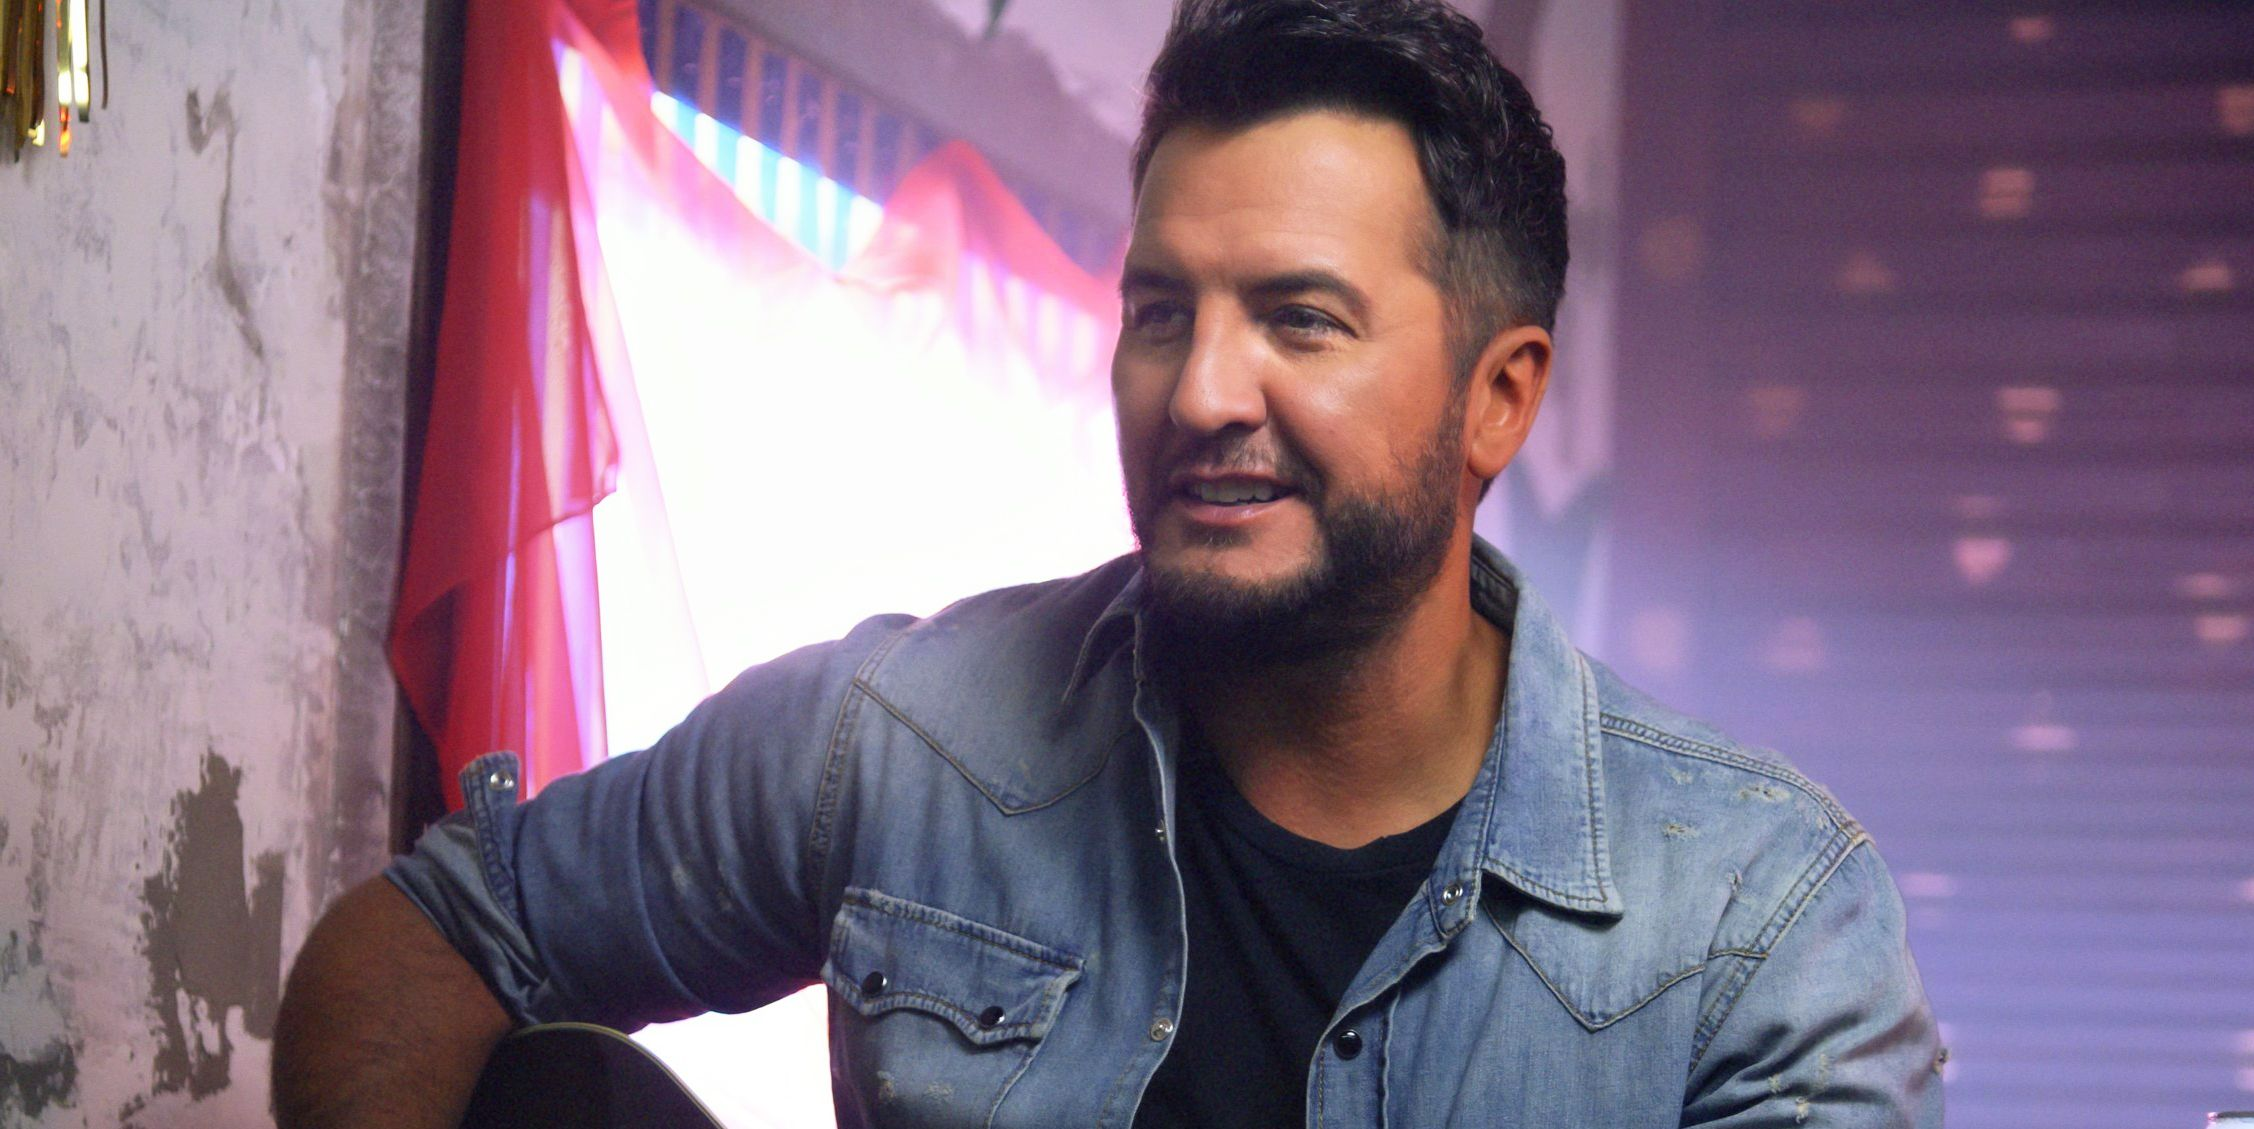 American Idol's Luke Bryan Shares a Sweet Childhood Memory About His Dad